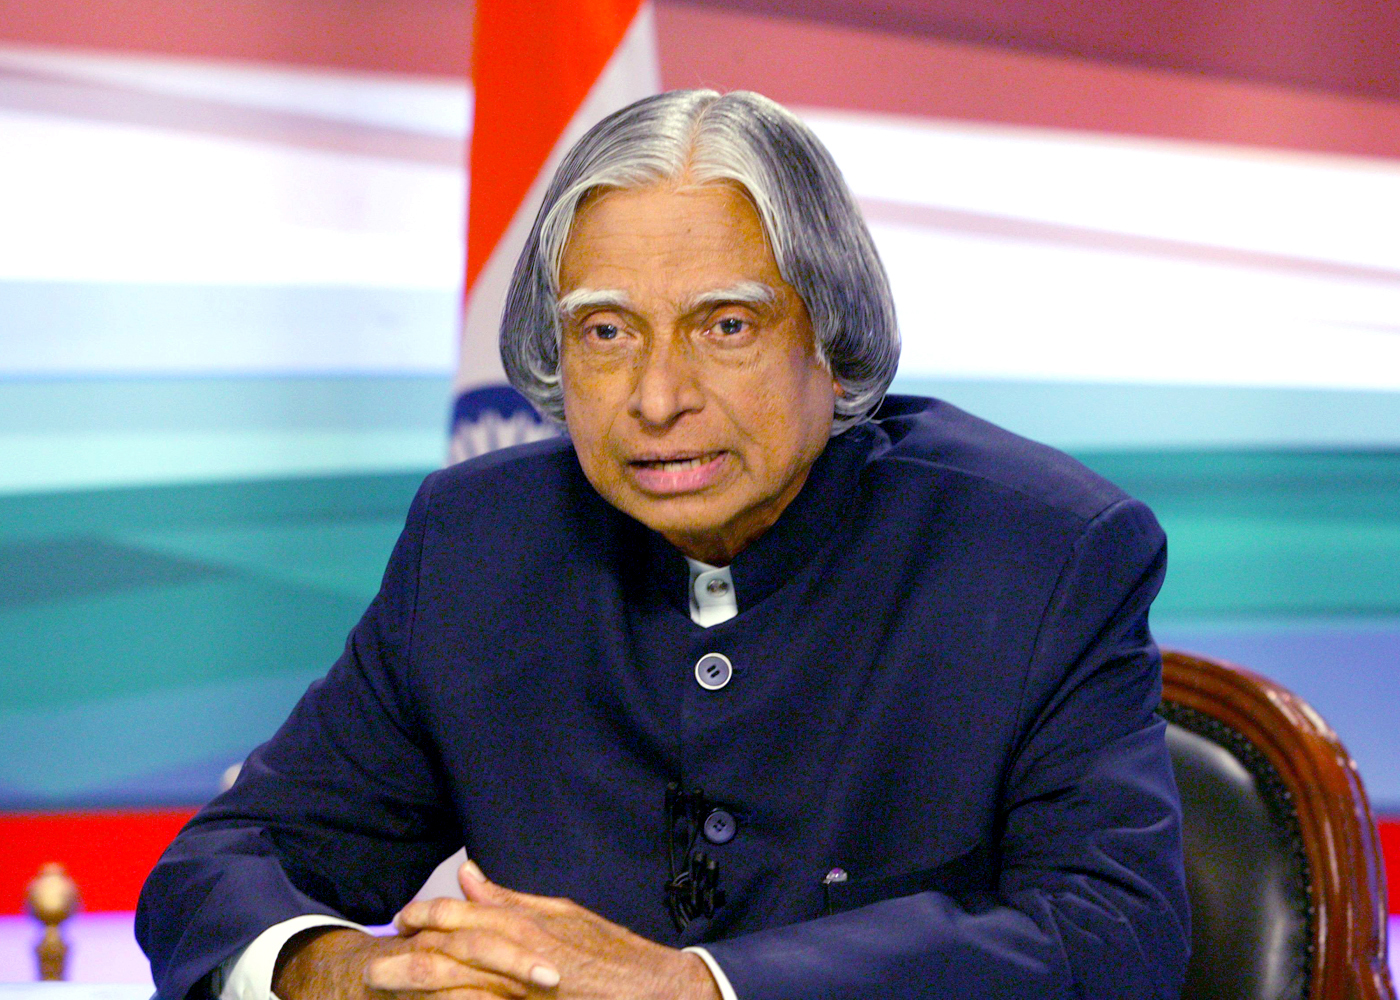 Abdul Kalam President Indian Scientists Biopics